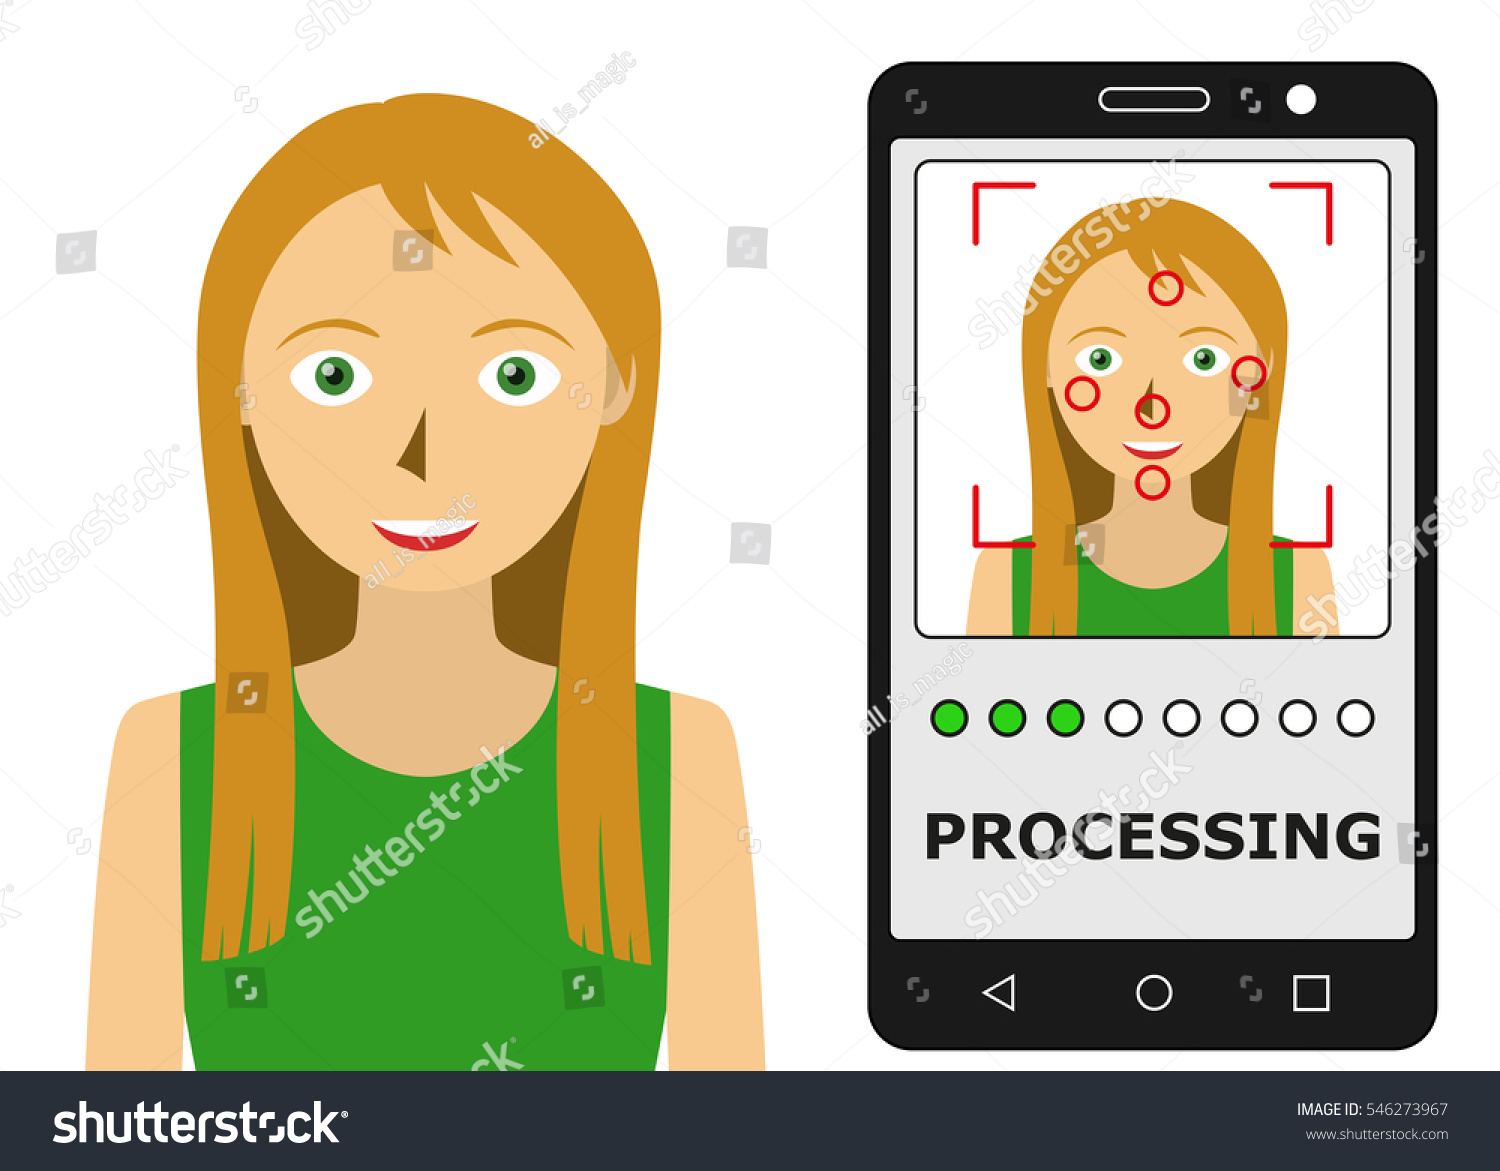 facial recognition technology for identification Gbl face - facial recognition technology for face detection, verification and identification.